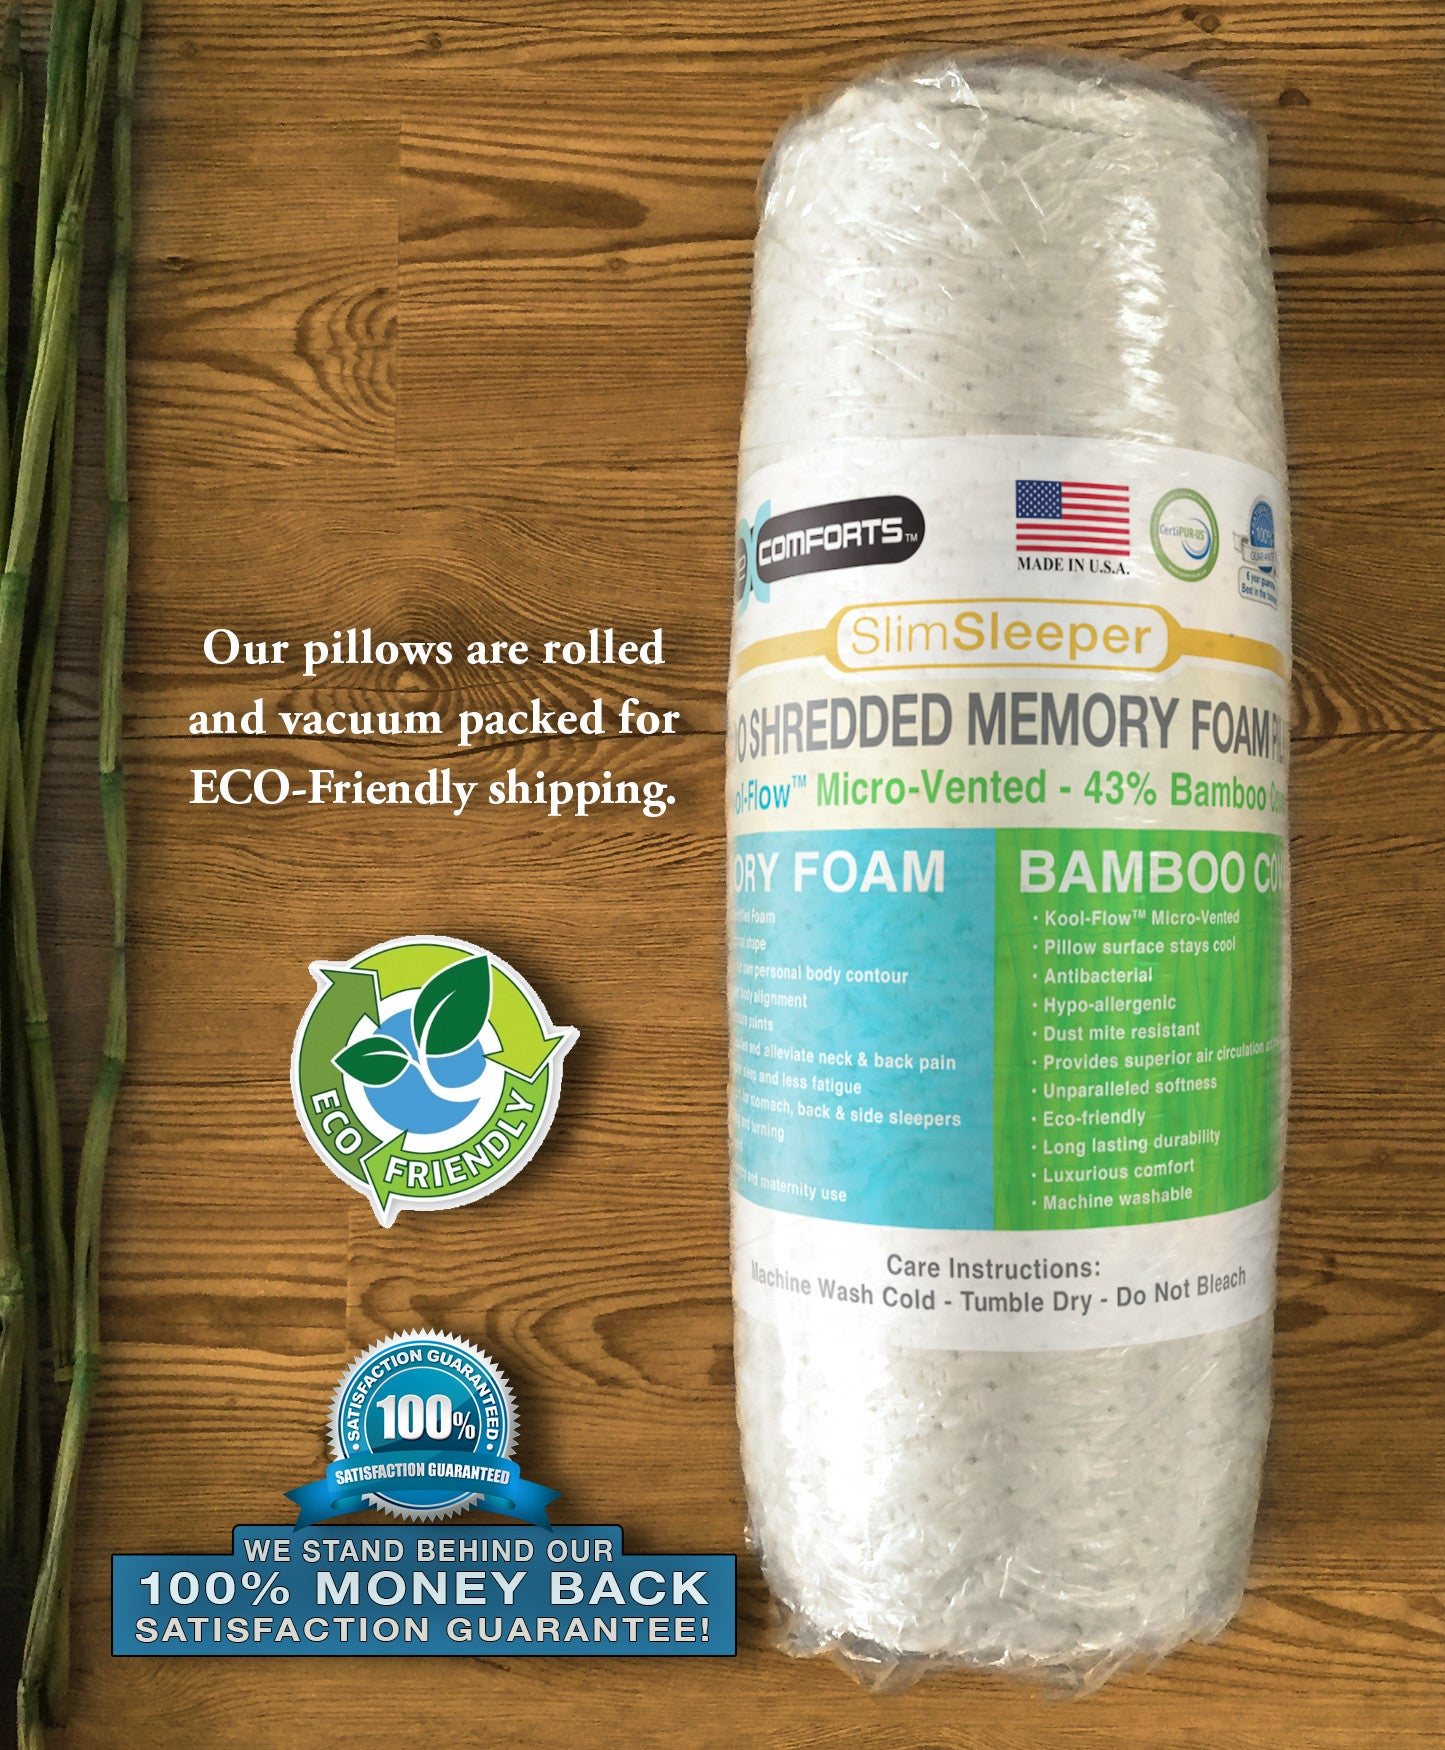 SlimSleeper Shredded Memory Foam Pillow With Bamboo Cover Xtreme